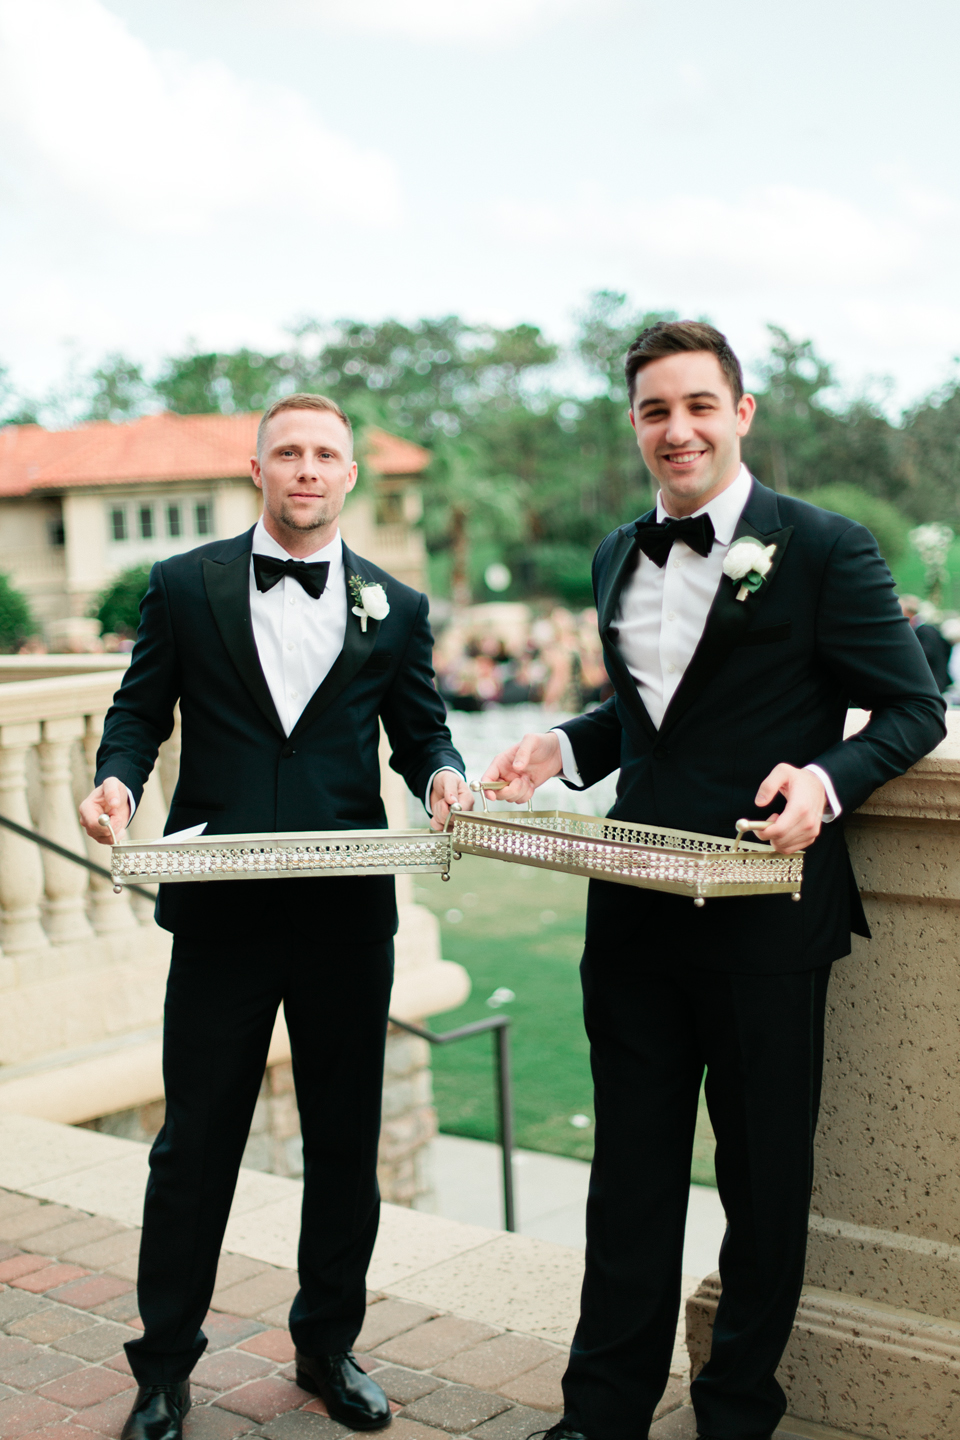 Picture of ushers at a wedding, wearing black tuxedos handing out programs at TPC Sawgrass in Ponte Vedra, Florida